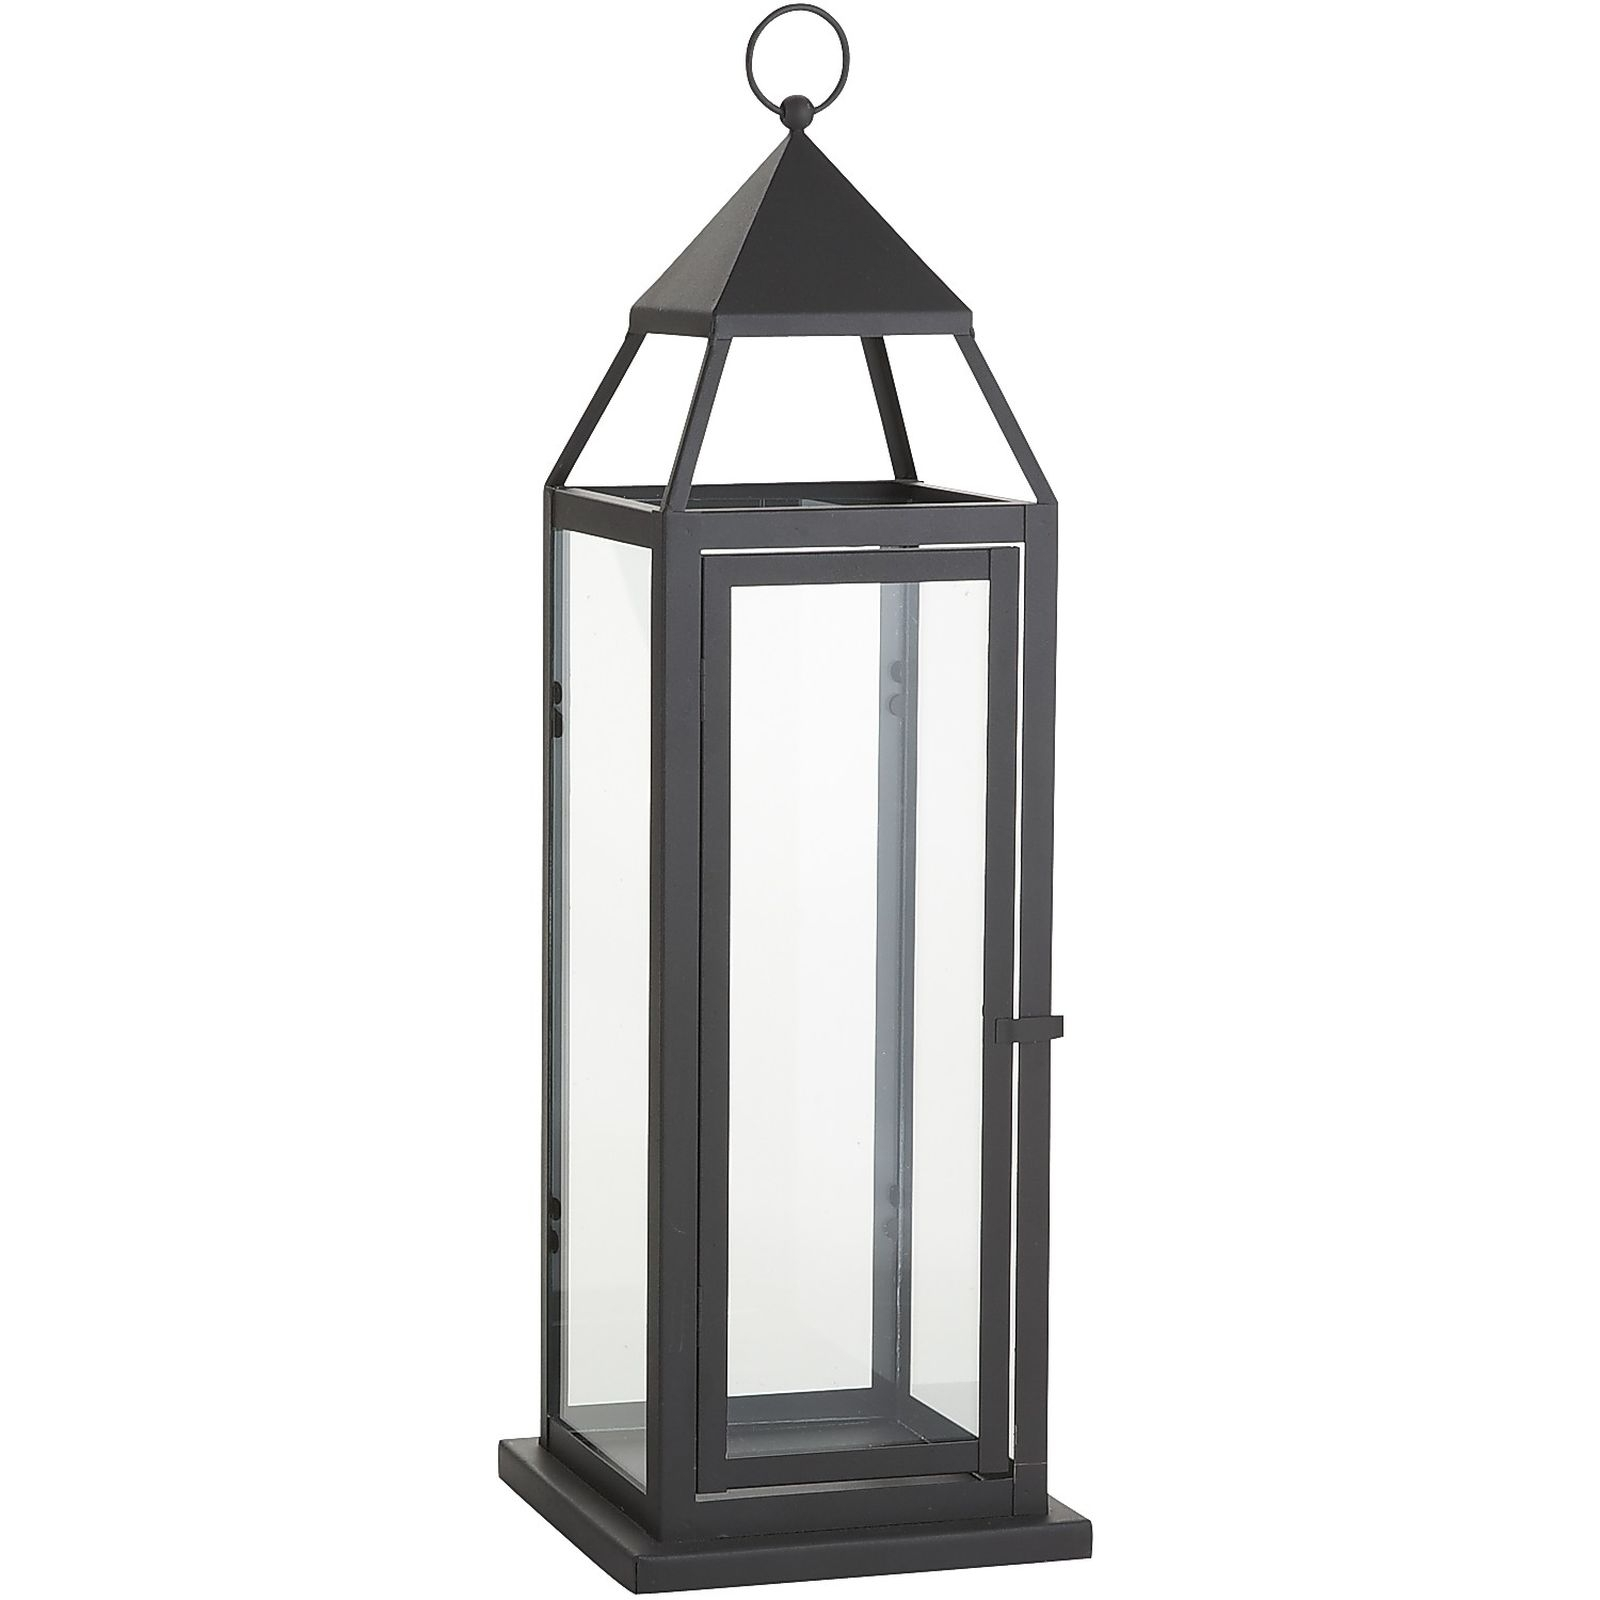 Garden & Outdoor: Dazzling Candle Lanterns For Outdoor Lighting With Regard To Outdoor Hanging Candle Lanterns (#8 of 15)